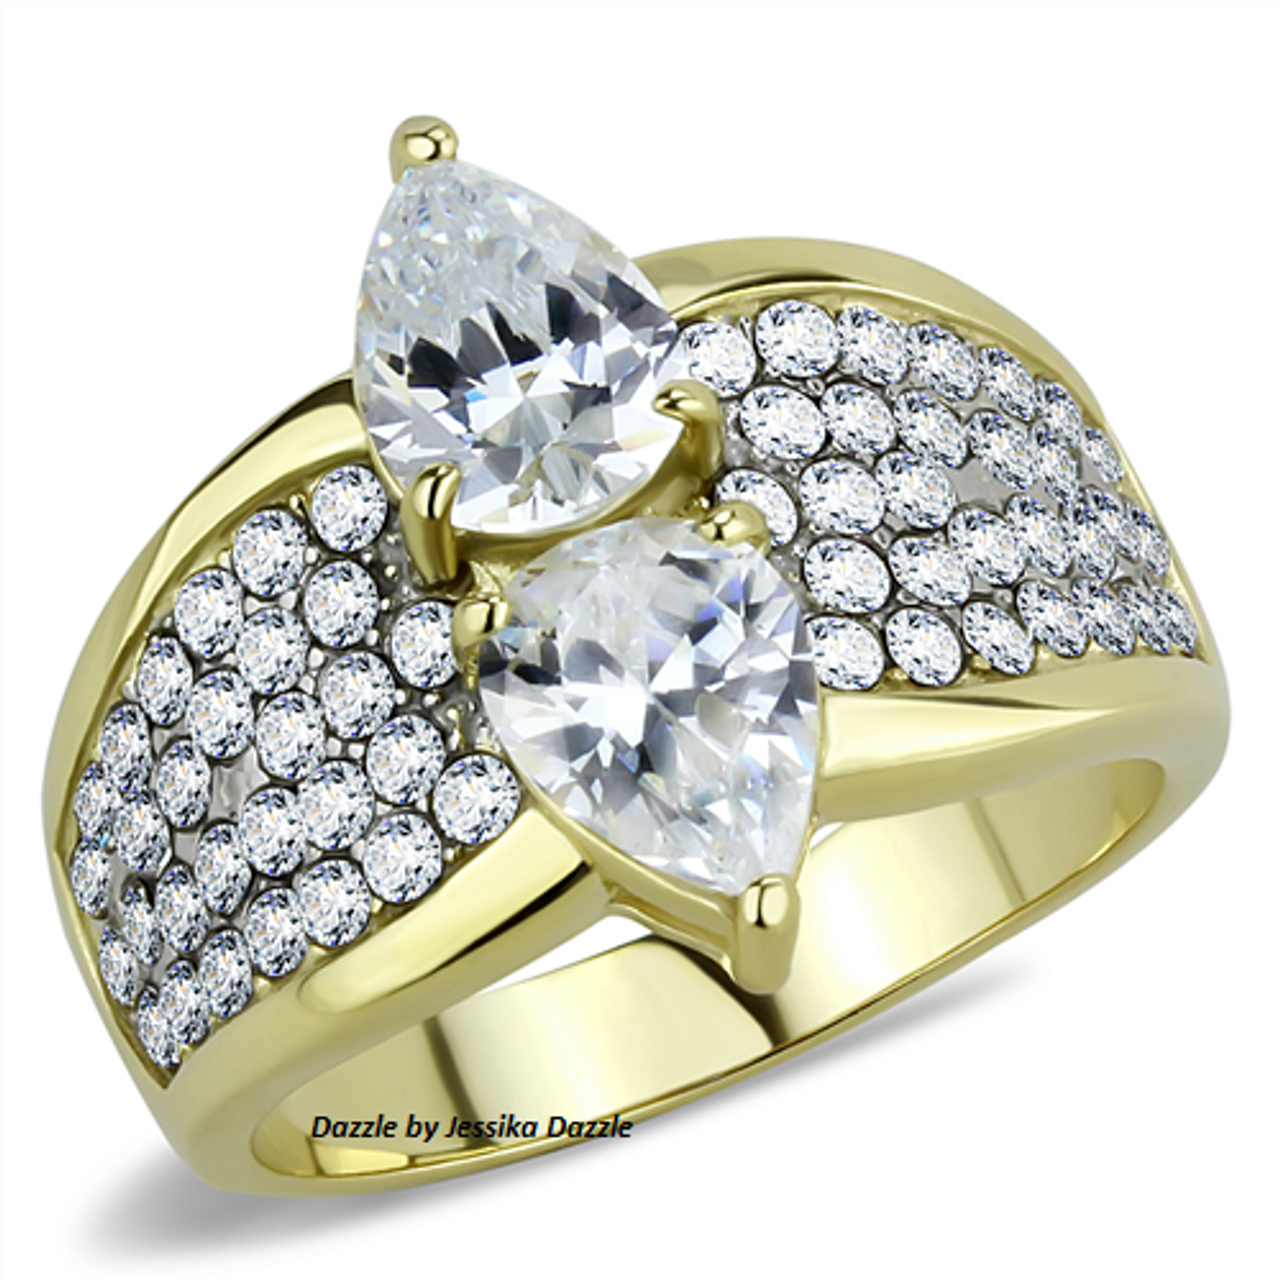 Pear Cut Stainless Steel Cubic Zirconia Ring (Gold)